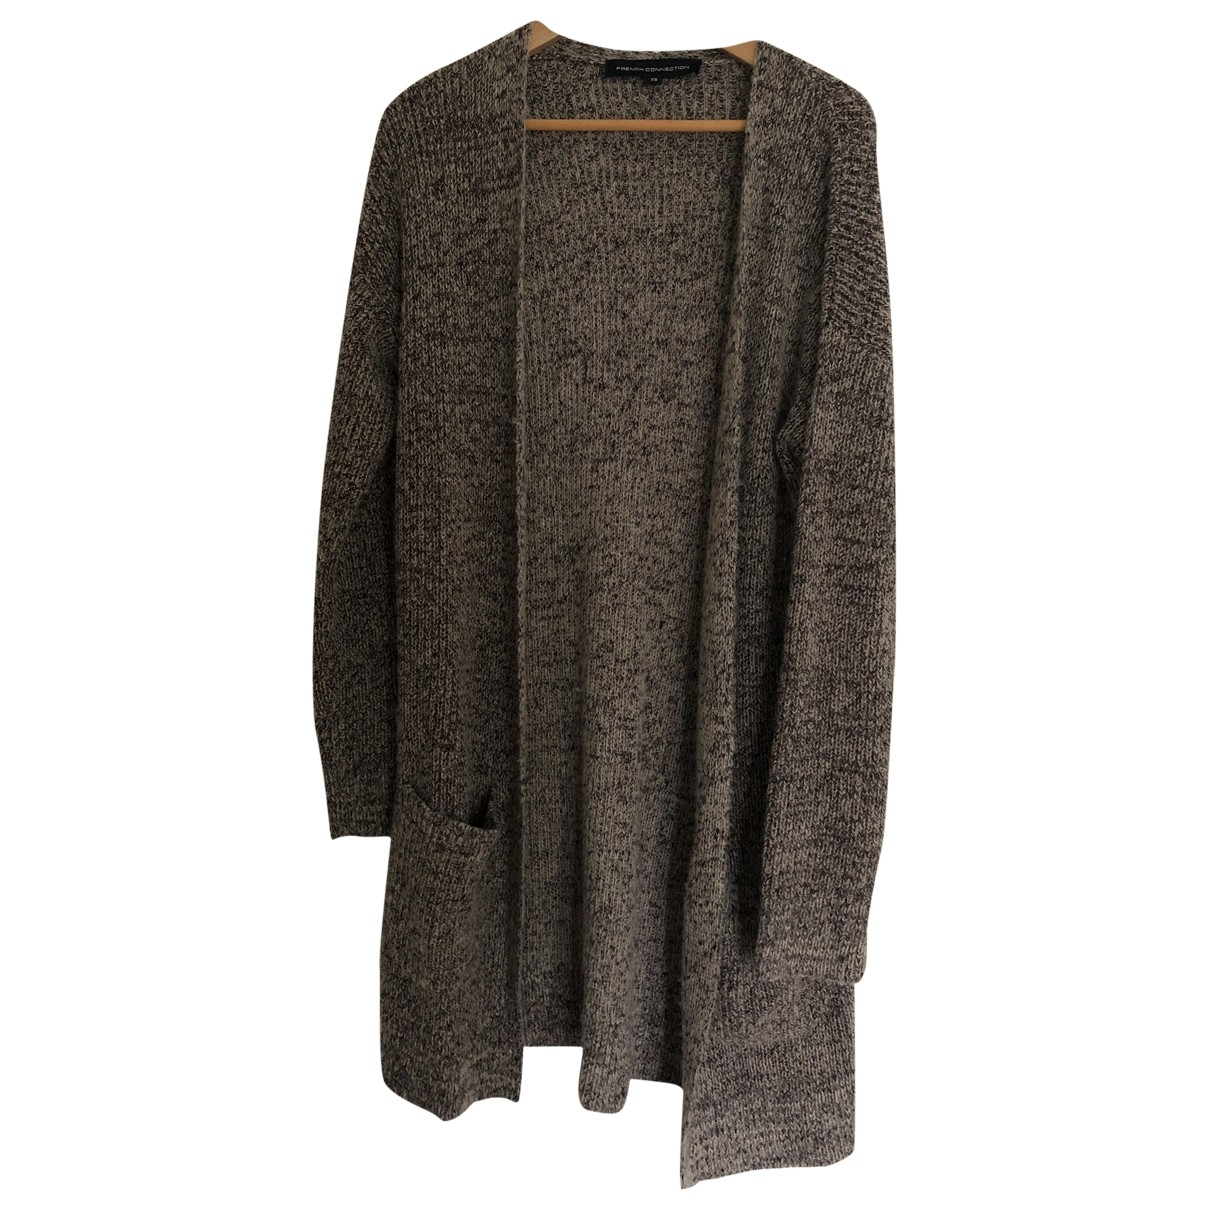 French Connection \N Grey Knitwear for Women XS International